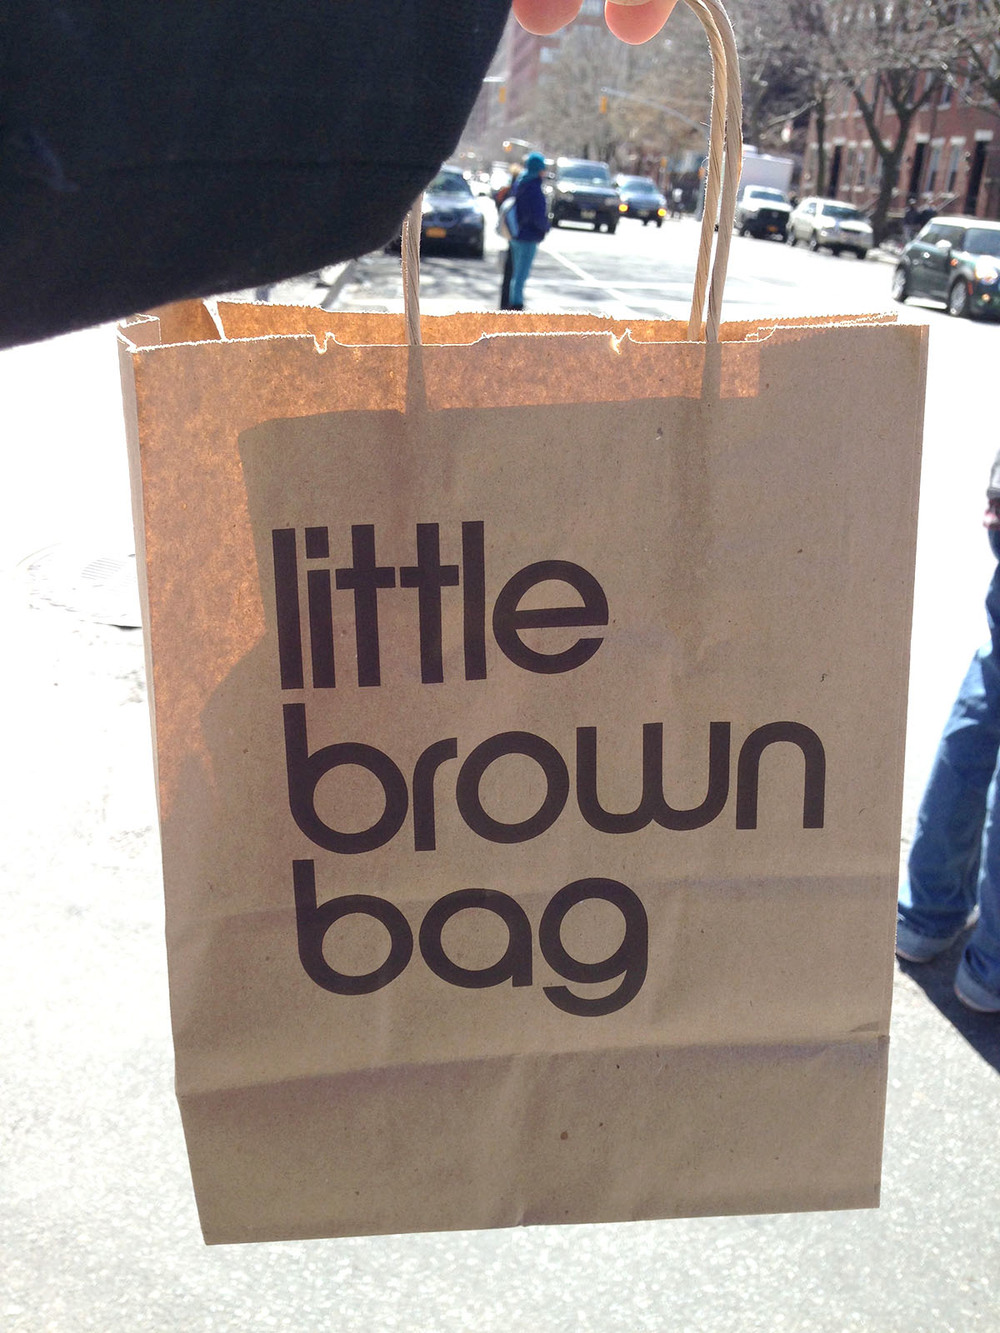 Made of basic kraft paper with a single color print, a iconic series of bags designed by the iconic designer, Massimo Vignelli, has transformed the basic utility of a shopping bag from holding your goods to a fashion status symbol. It has become so popular, they eventually took the iconic design and evolved it to a true fashion accessory bag available in leather and waterproof versions.